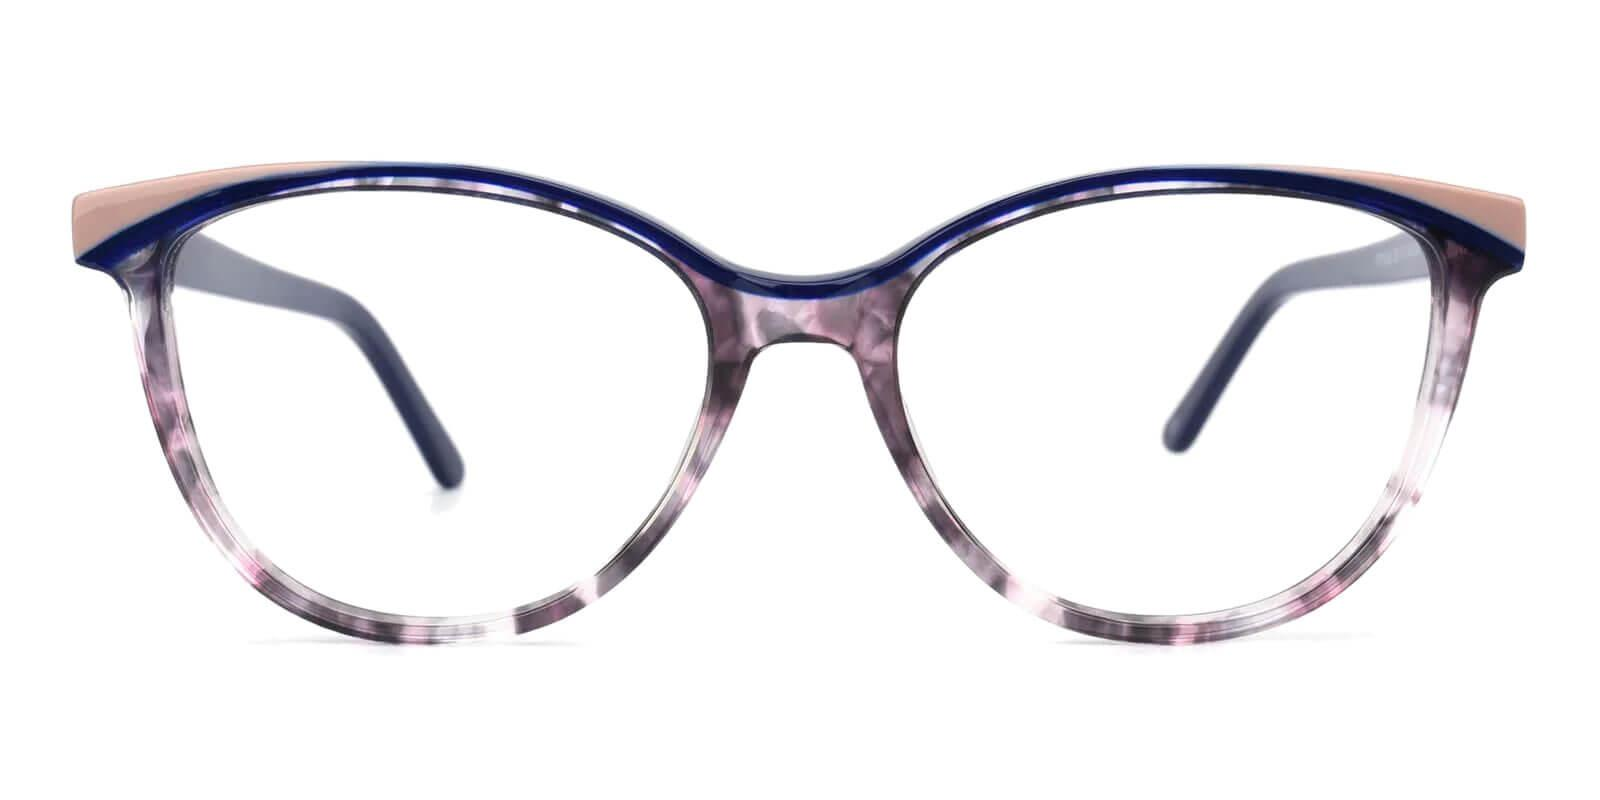 Salzburg Purple Acetate Eyeglasses , UniversalBridgeFit Frames from ABBE Glasses